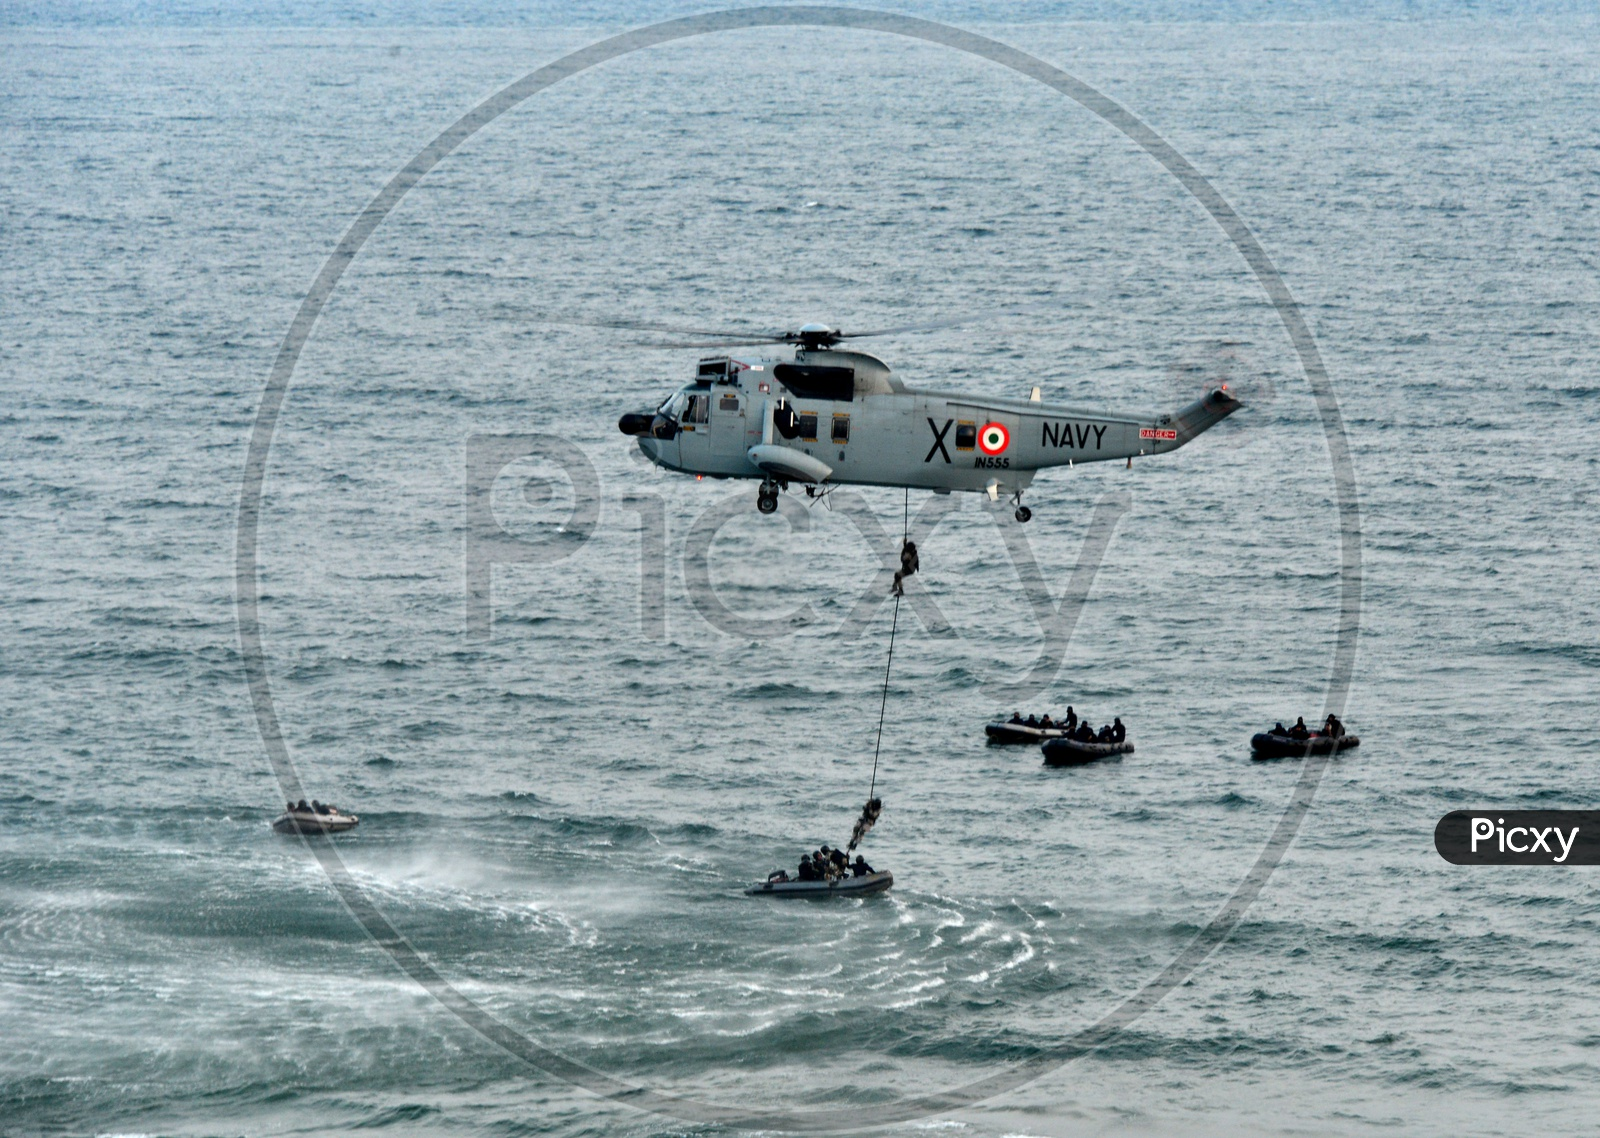 Indian Navy Sea King Helicopter Deploying Troops into Sea